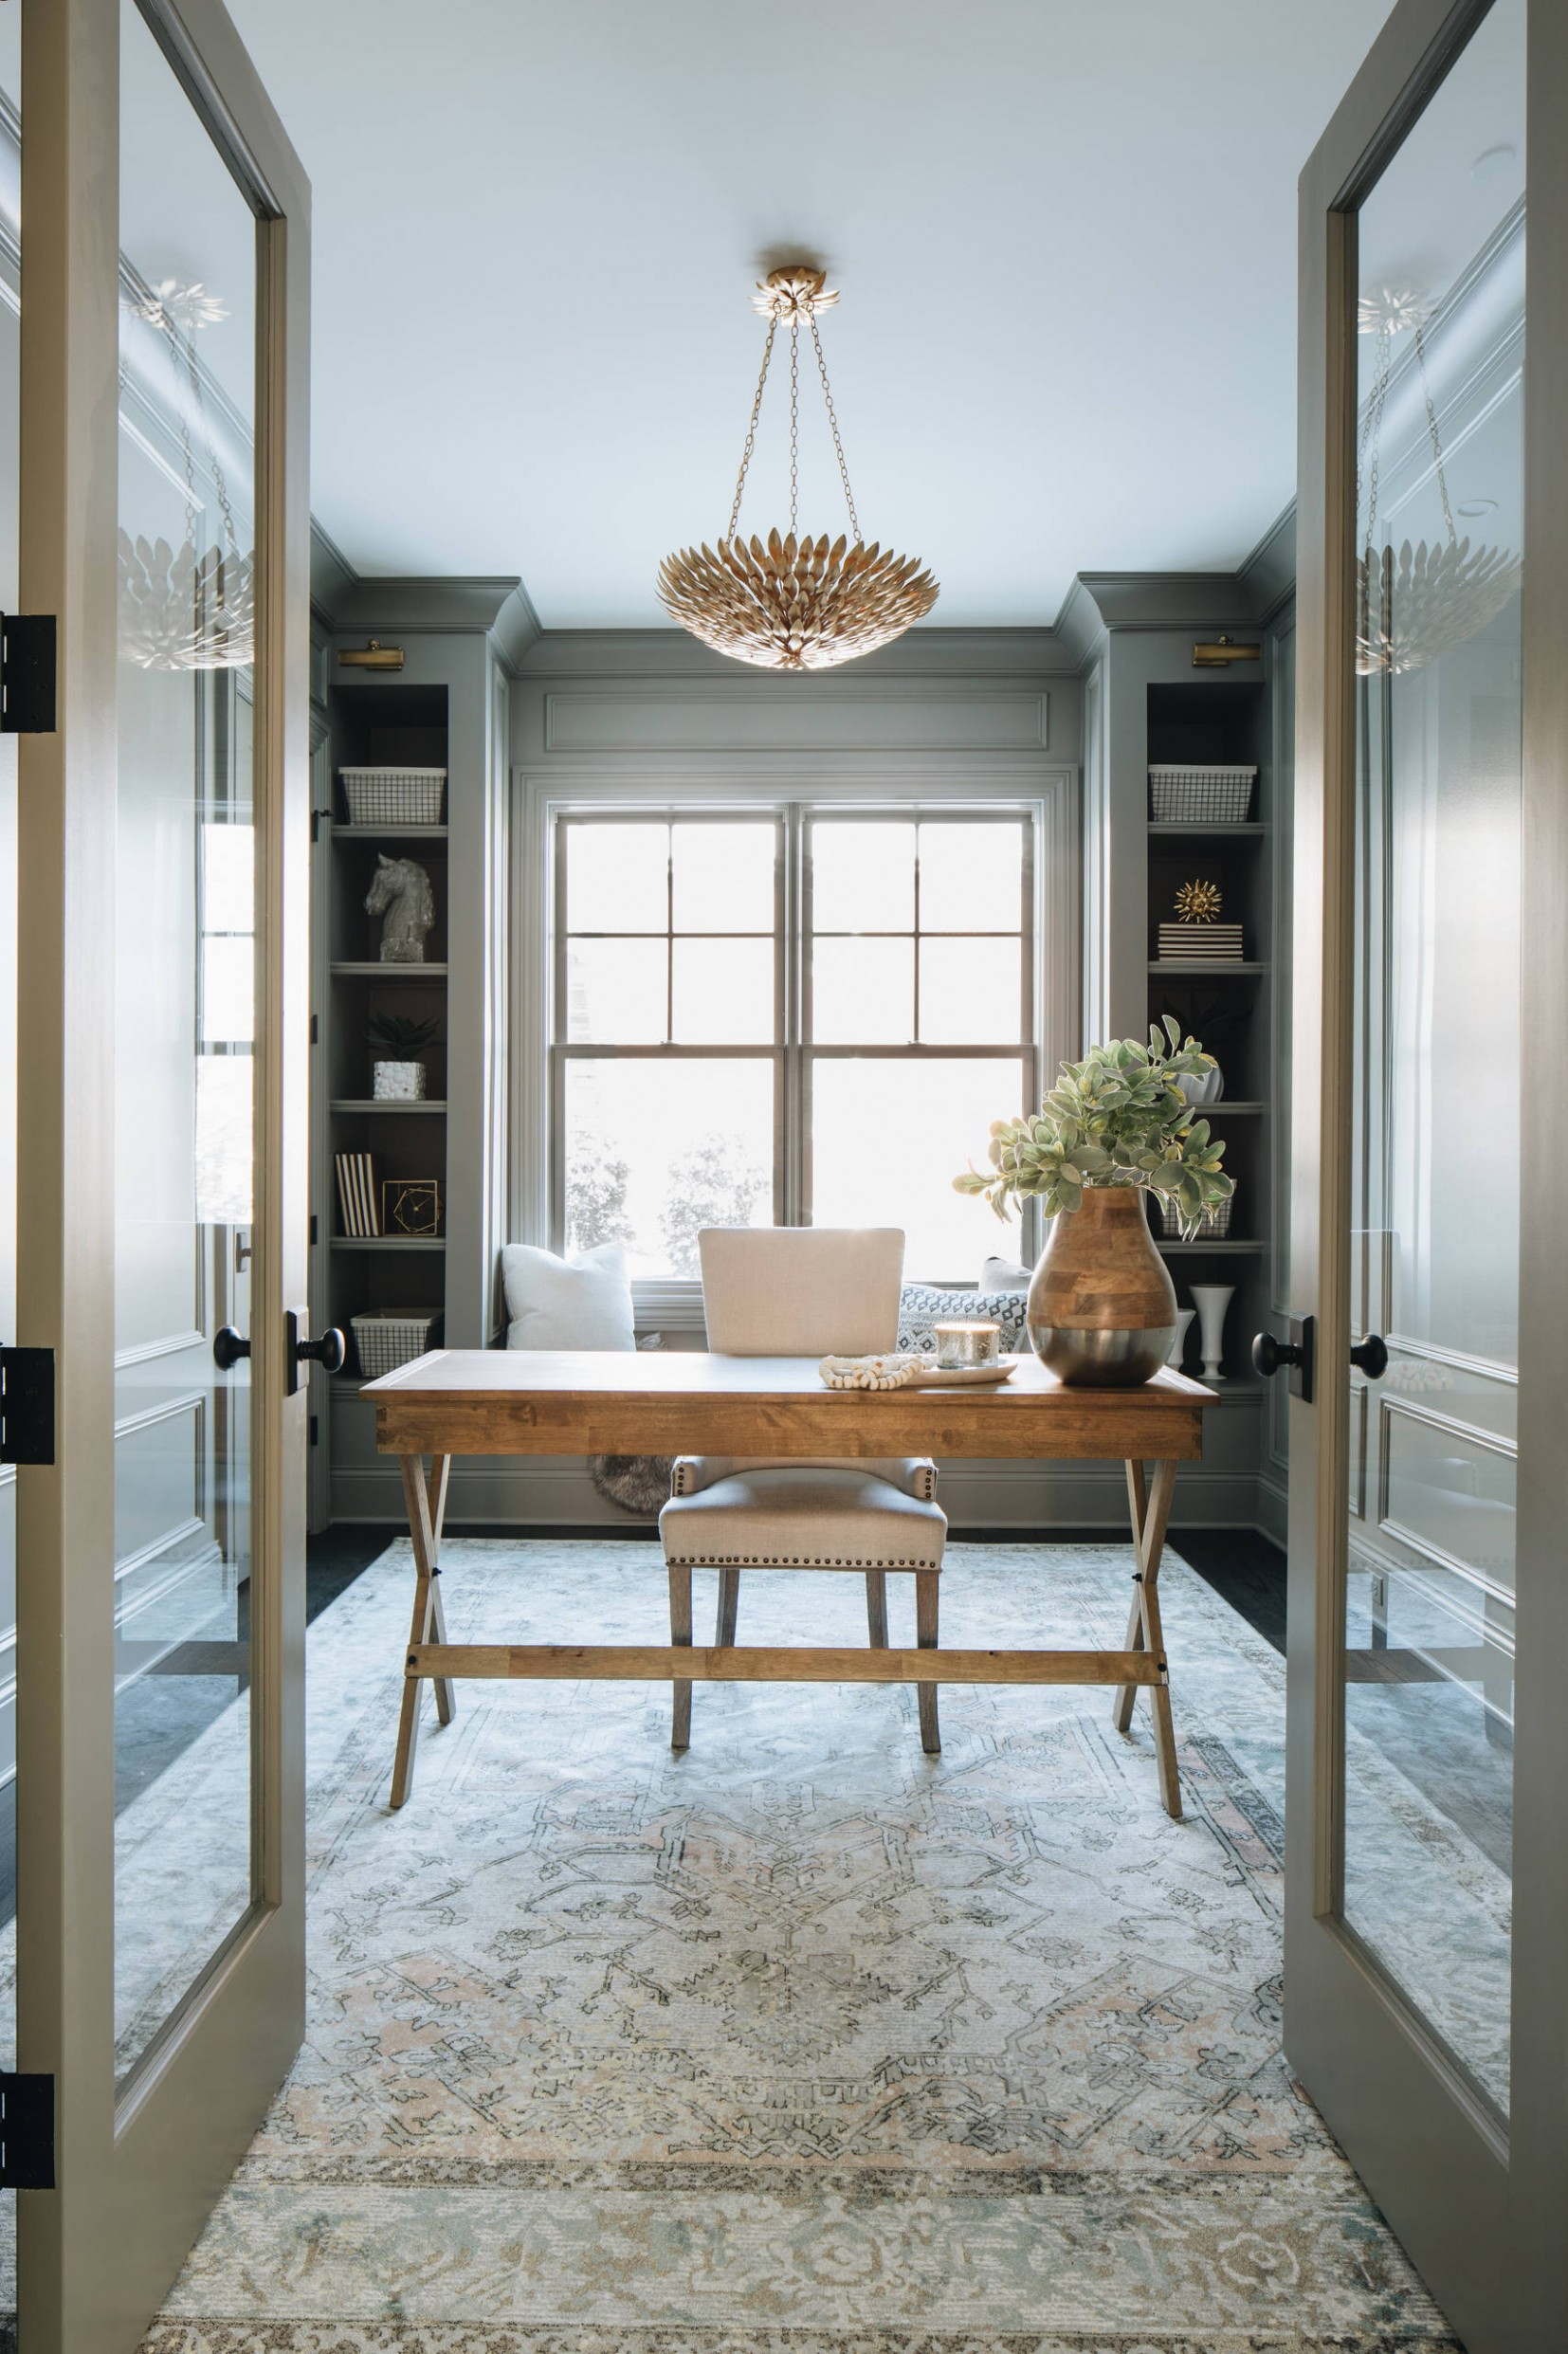 12 Beautiful Home Office Pictures & Ideas November 12  Houzz - Home Office Renovation Ideas